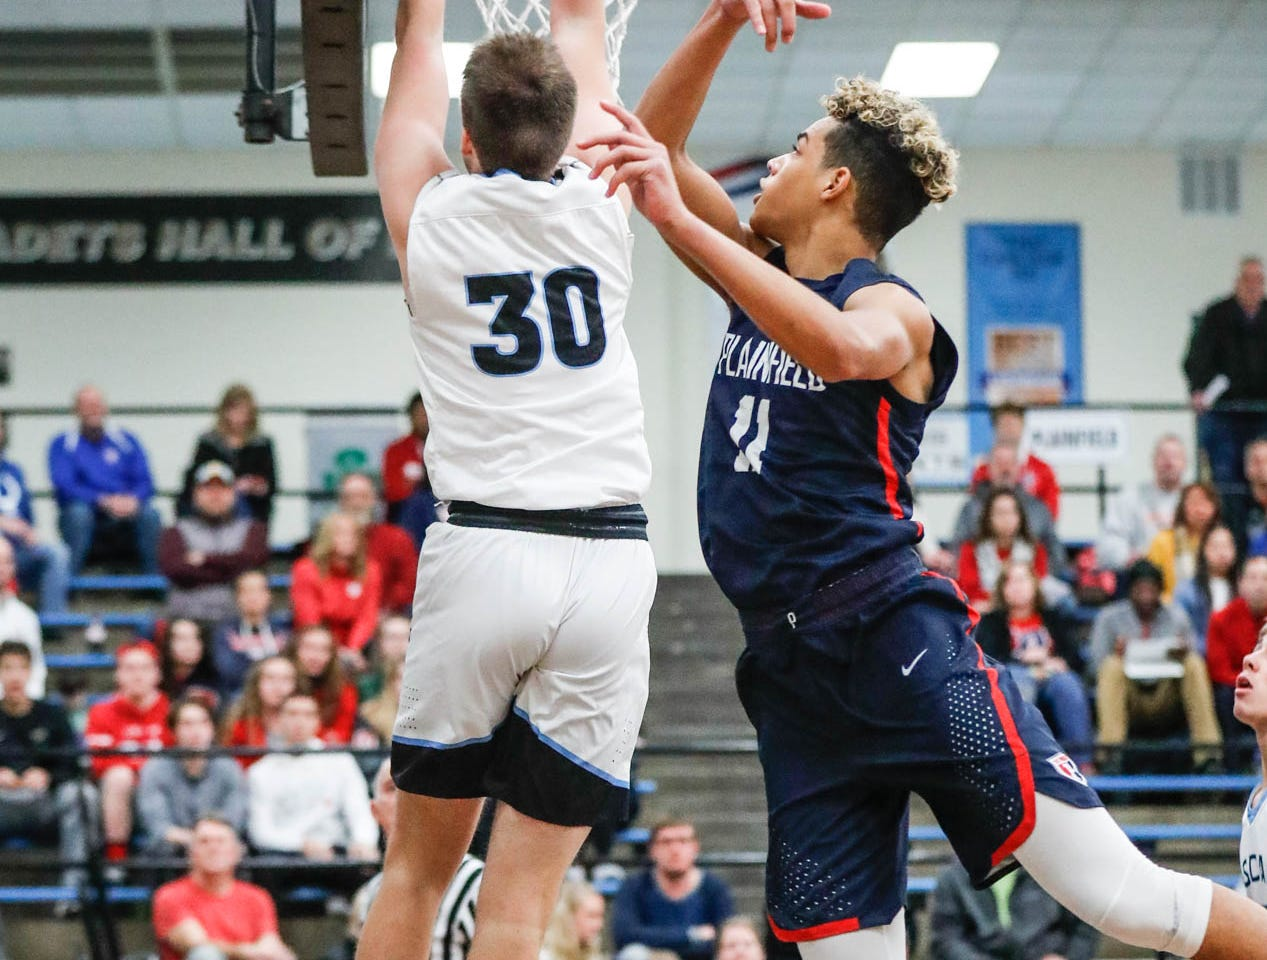 Cascade High School's Benson Walker (30), and Plainfield High School's forward Cade Gibbs (11) jump for a rebound during a 2019 Hendricks County Basketball Tournament game between Plainfield High School and Cascade High School, held at Cascade on Wednesday, Jan. 2, 2019.